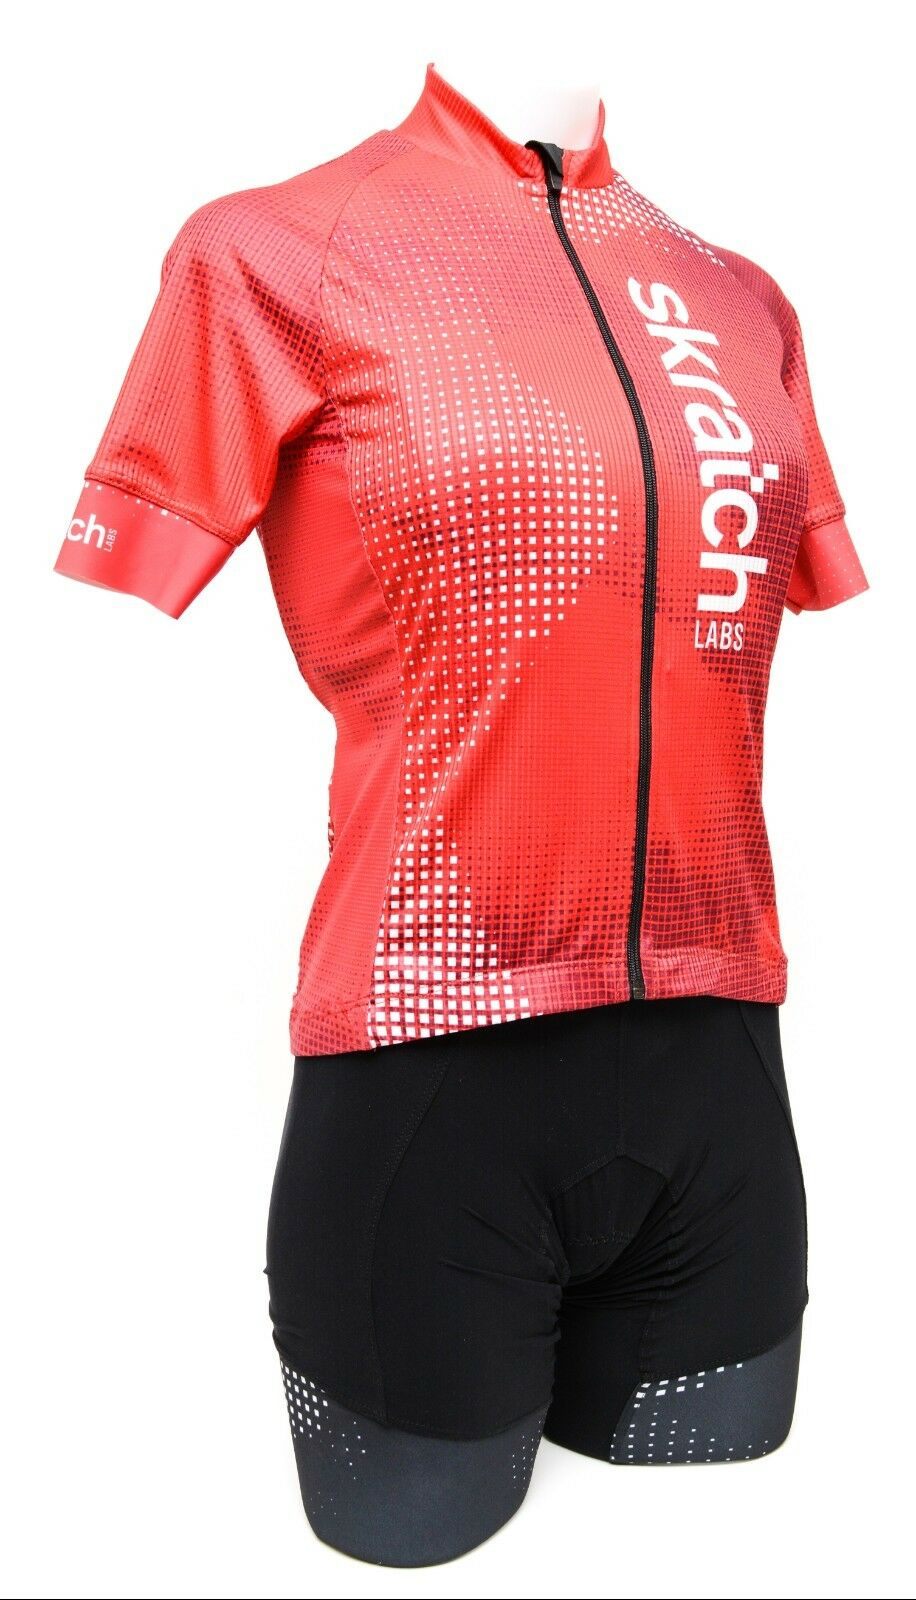 Donkey Label skratch LABS Short Sleeve Cycling Kit Women MEDIUM Red Road Bike